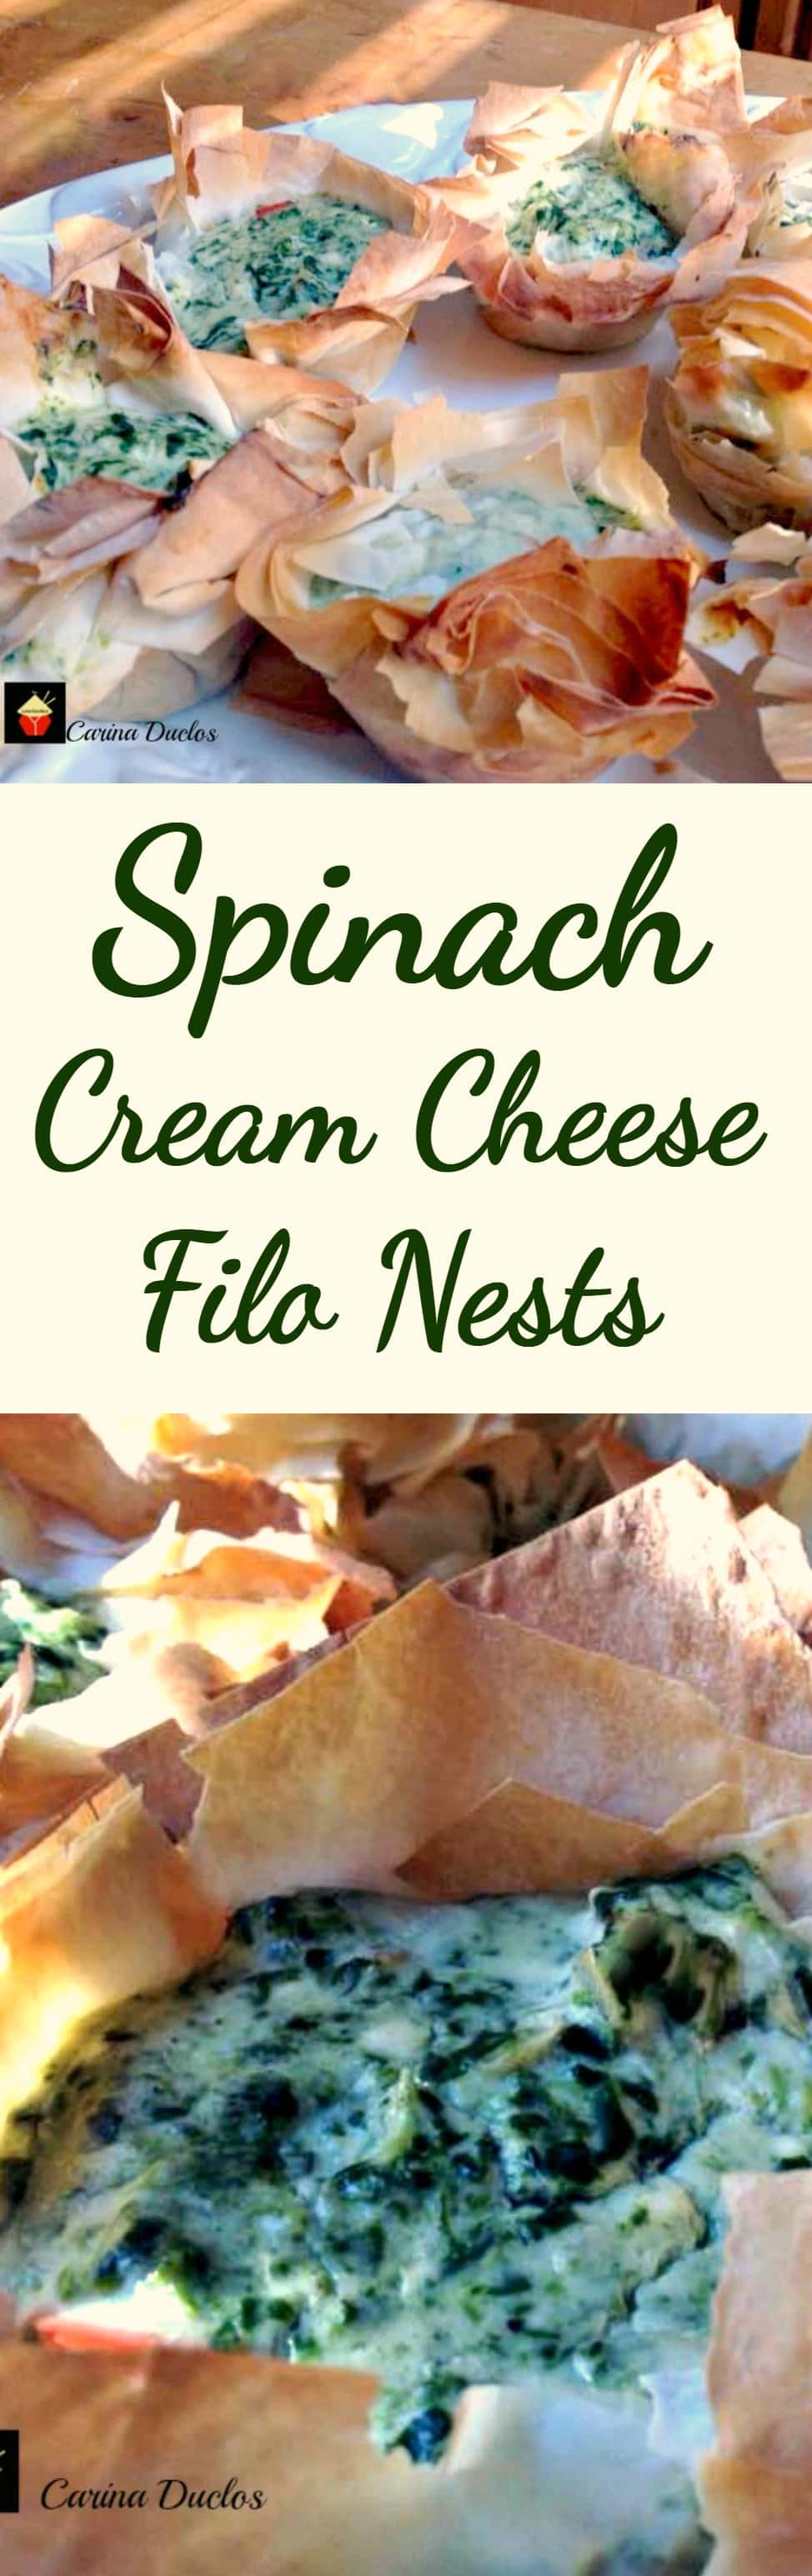 Spinach Cream Cheese Filo Nests. An incredibly flexible quick and easy recipe, great for brunches, parties lunch boxes. Options to add bacon, chicken for the meat lovers too!   Lovefoodies.com